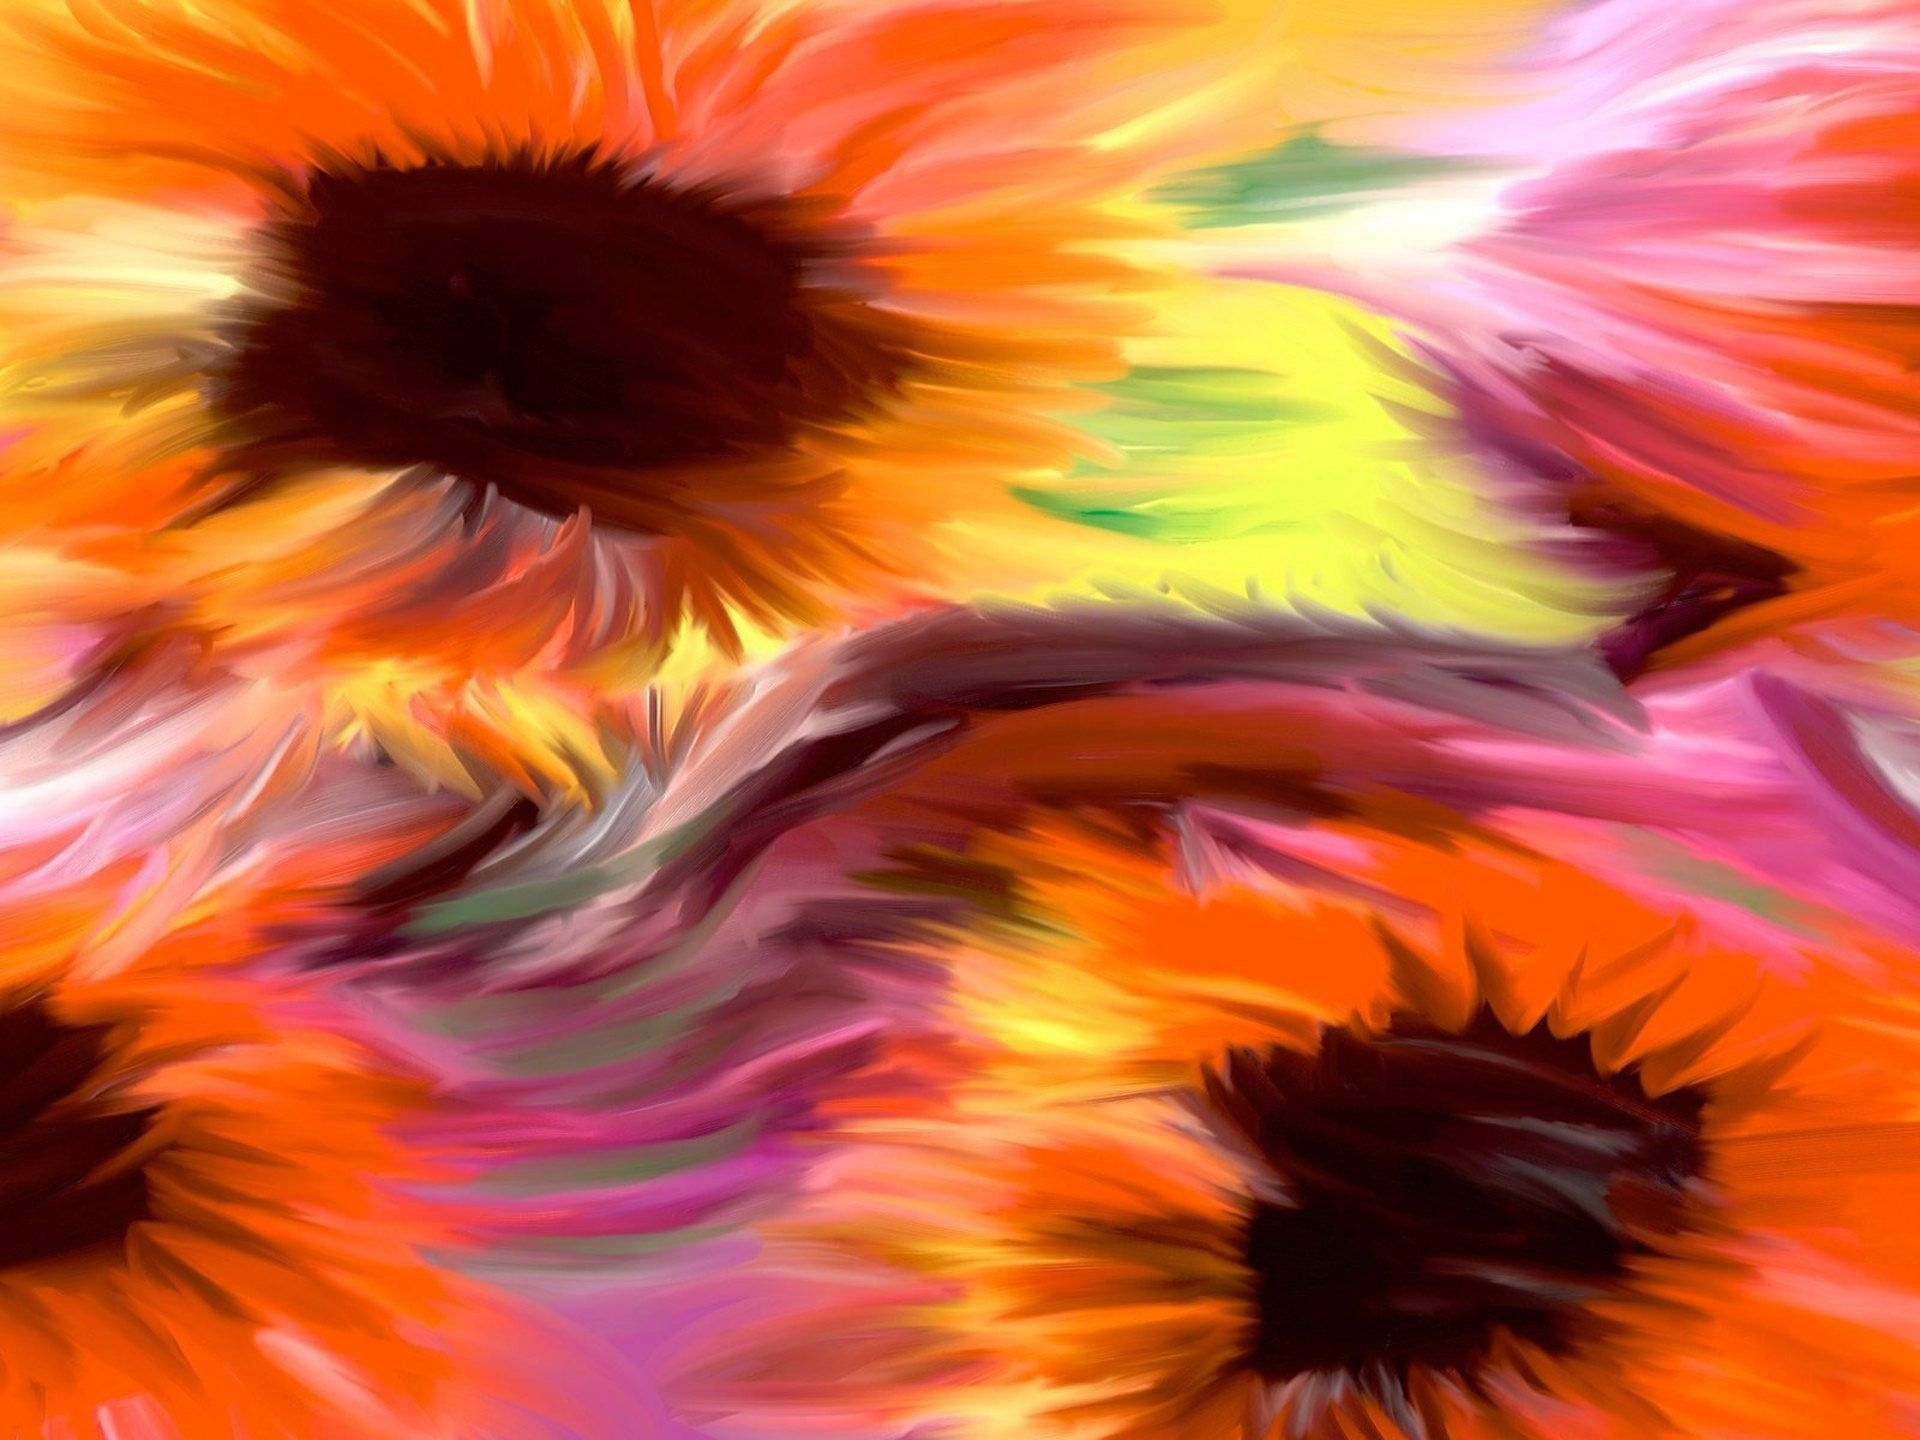 Pin By Shelia Arnold On Color My World Flower Painting Watercolor Flowers Sunflower Wallpaper